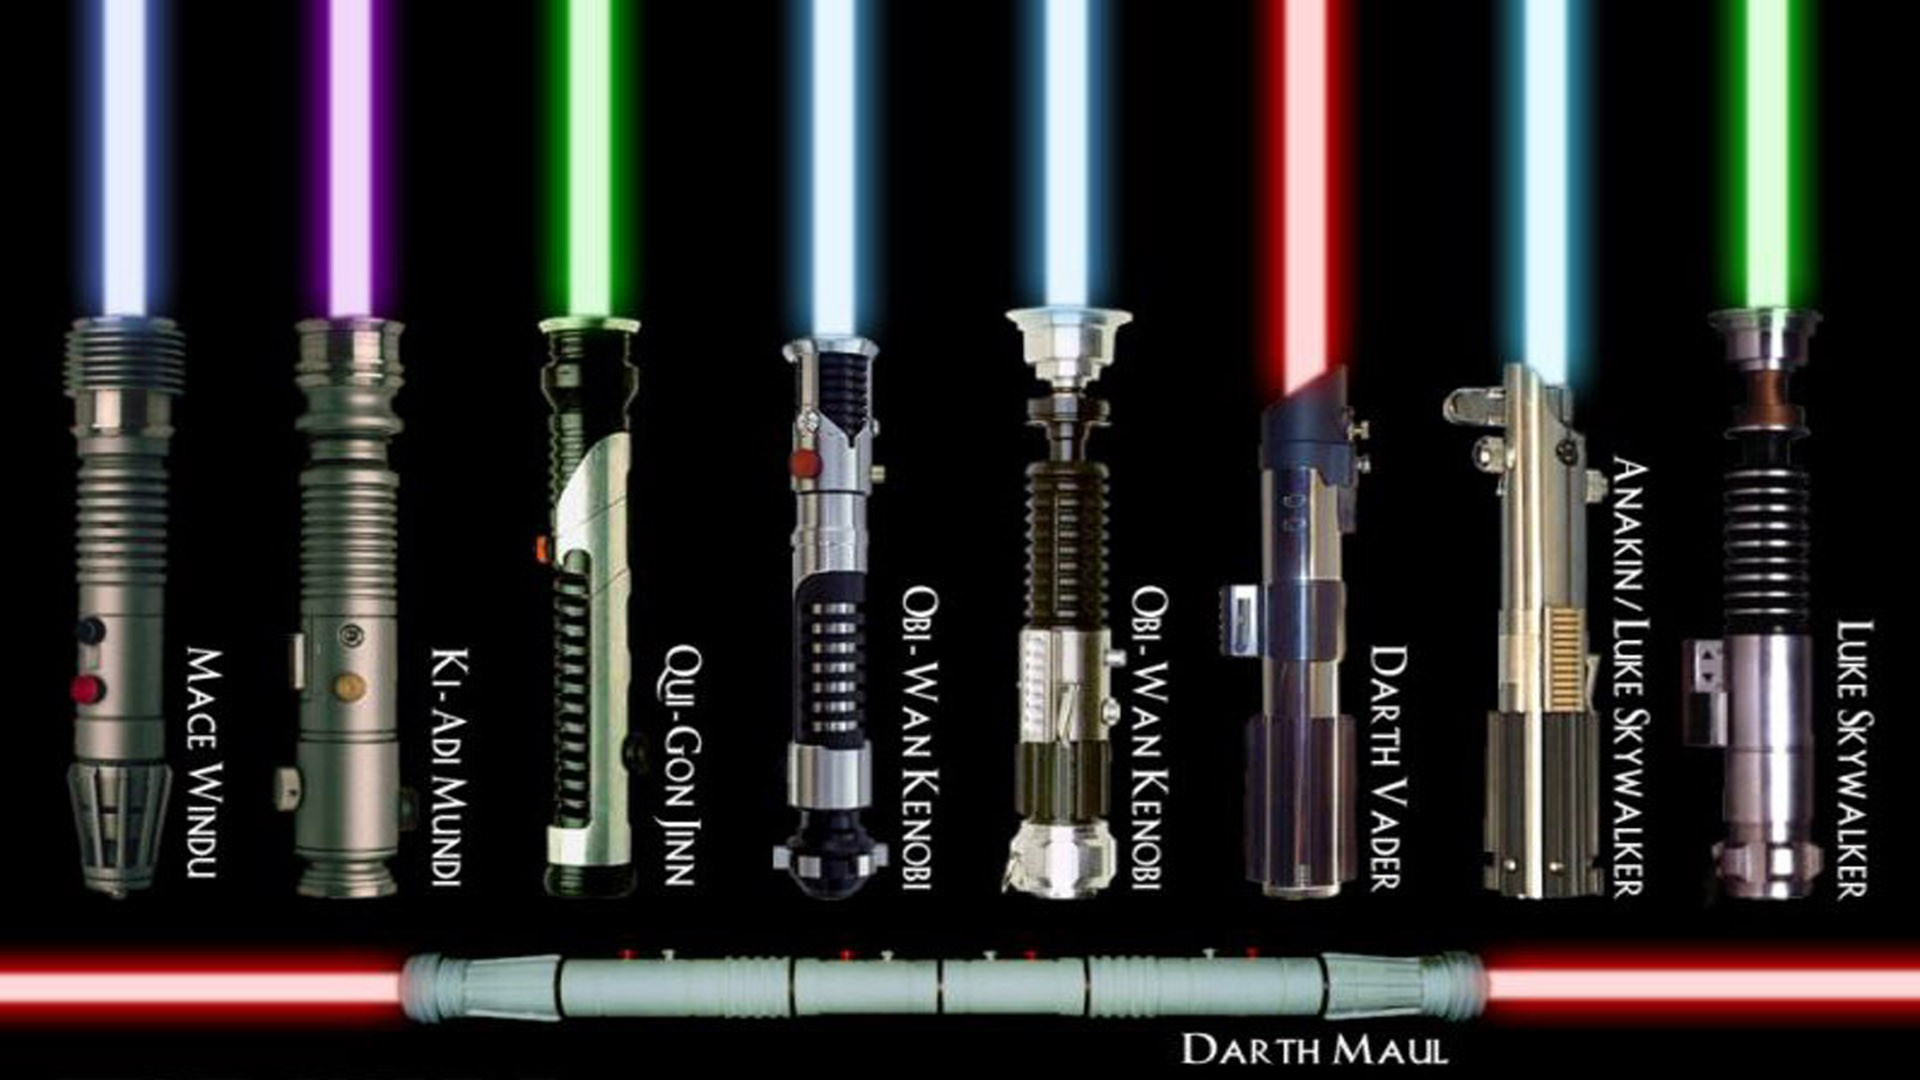 lightsaber hd wallpaper - wallpapersafari